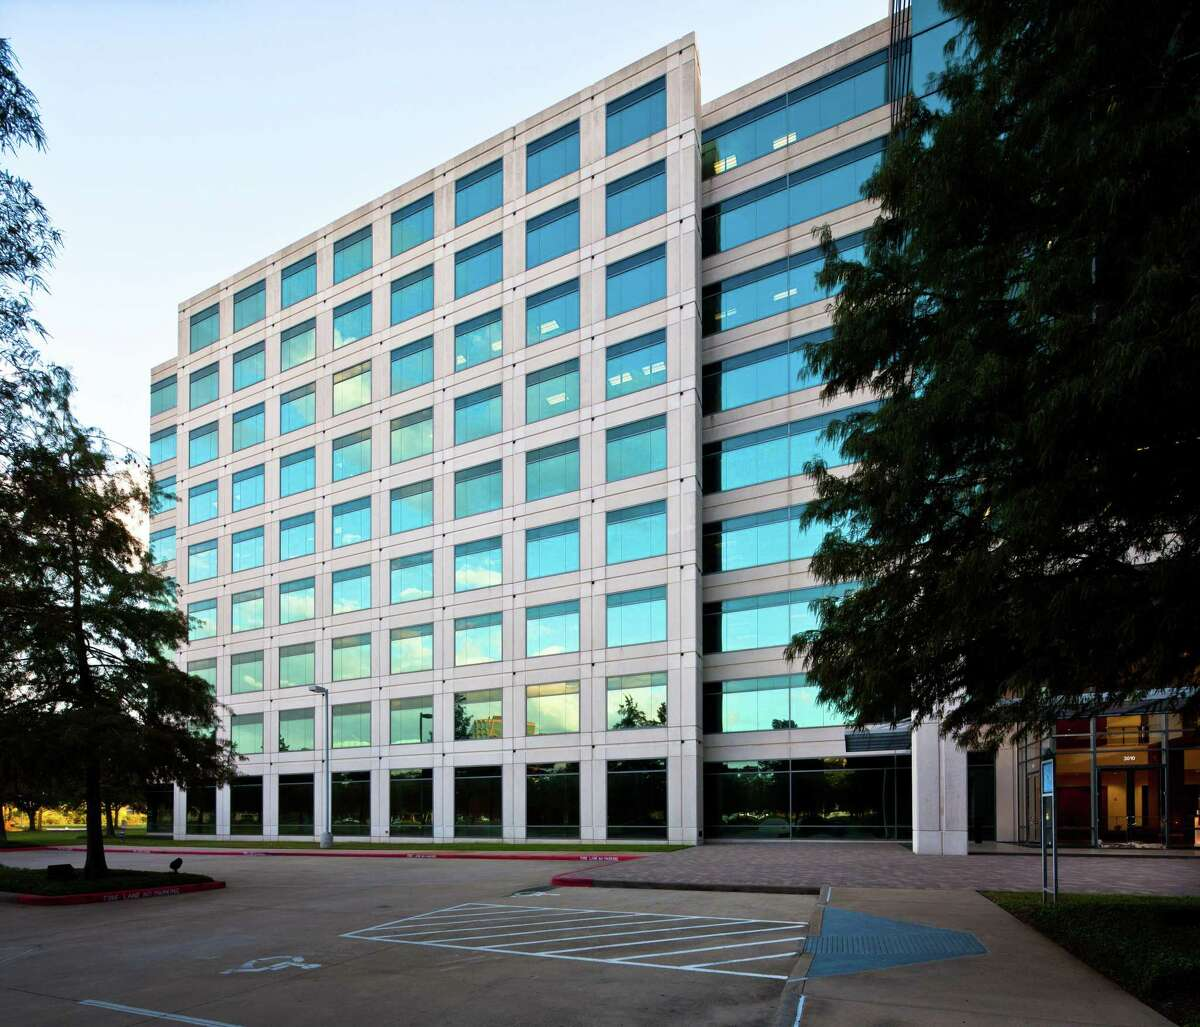 Pinnacle Westchase, the 470,000-square-foot office building at 3010 Briarpark Drive, is owned by Treeview Real Estate Advisors.